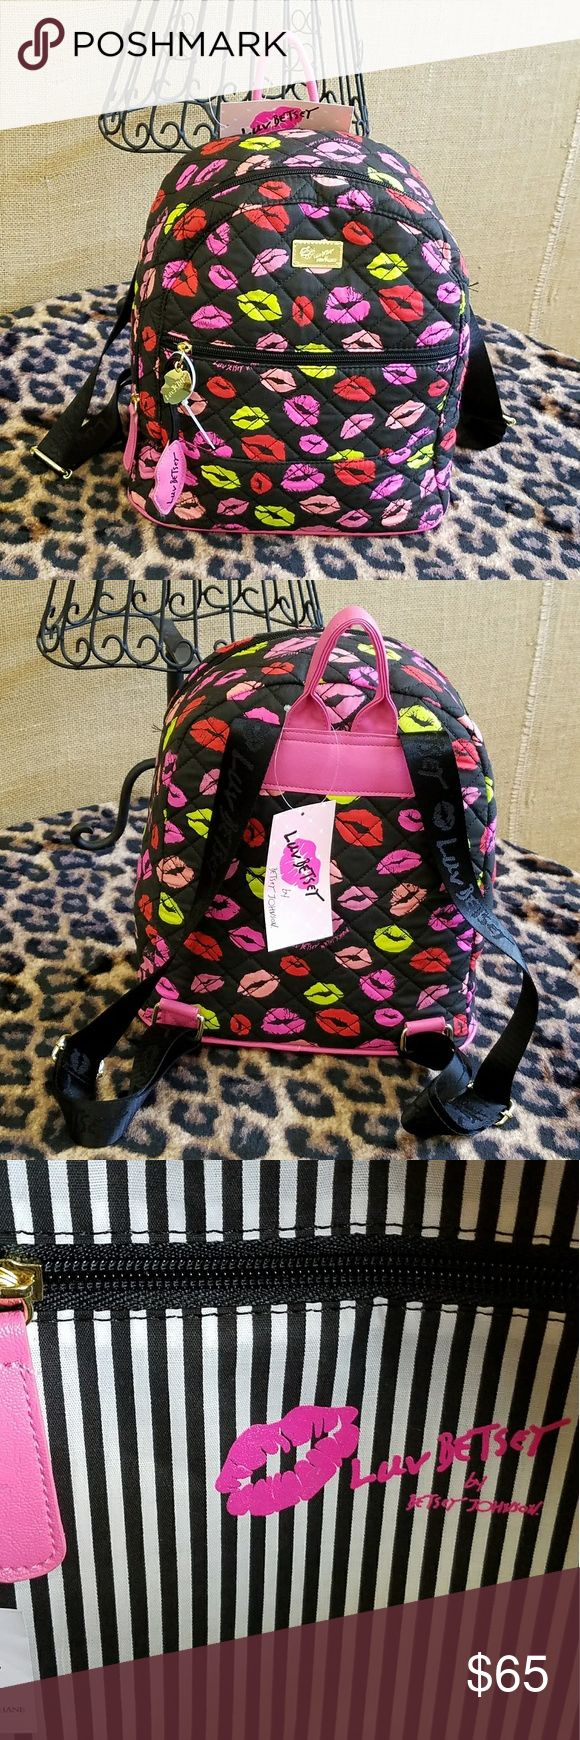 😗NWT-BETSEY JOHNSON KISS BACKPACK! 💕NWT-BETSEY JOHNSON KISSED BACKPACK! THIS SUPER CUTE KISSES BACKPACK OFFERS A LARGE ZIPPER COMPARTMENT AND A FRONT ZIPPER COMPARTMENT. MEDIUM SIZE WITH PLENTY OF ROOM FOR ALL YOUR ITEMS! JUST A GREAT DESIGN INSIDE & OUT.   🌹NWT- BRAND NEW WITH TAGS 🌹100% AUTHENTIC 🌹SAME DAY SHIPPING 🌹OFFERS ACCEPTED THROUGH THE OFFER BUTTON 🌹NO TRADES   🚫PLEASE FOLLOW BOUTIQUE RULES AND BE RESPECTFUL THIS IS A BUSINESS THANK YOU😊 Betsey Johnson Bags Backpacks